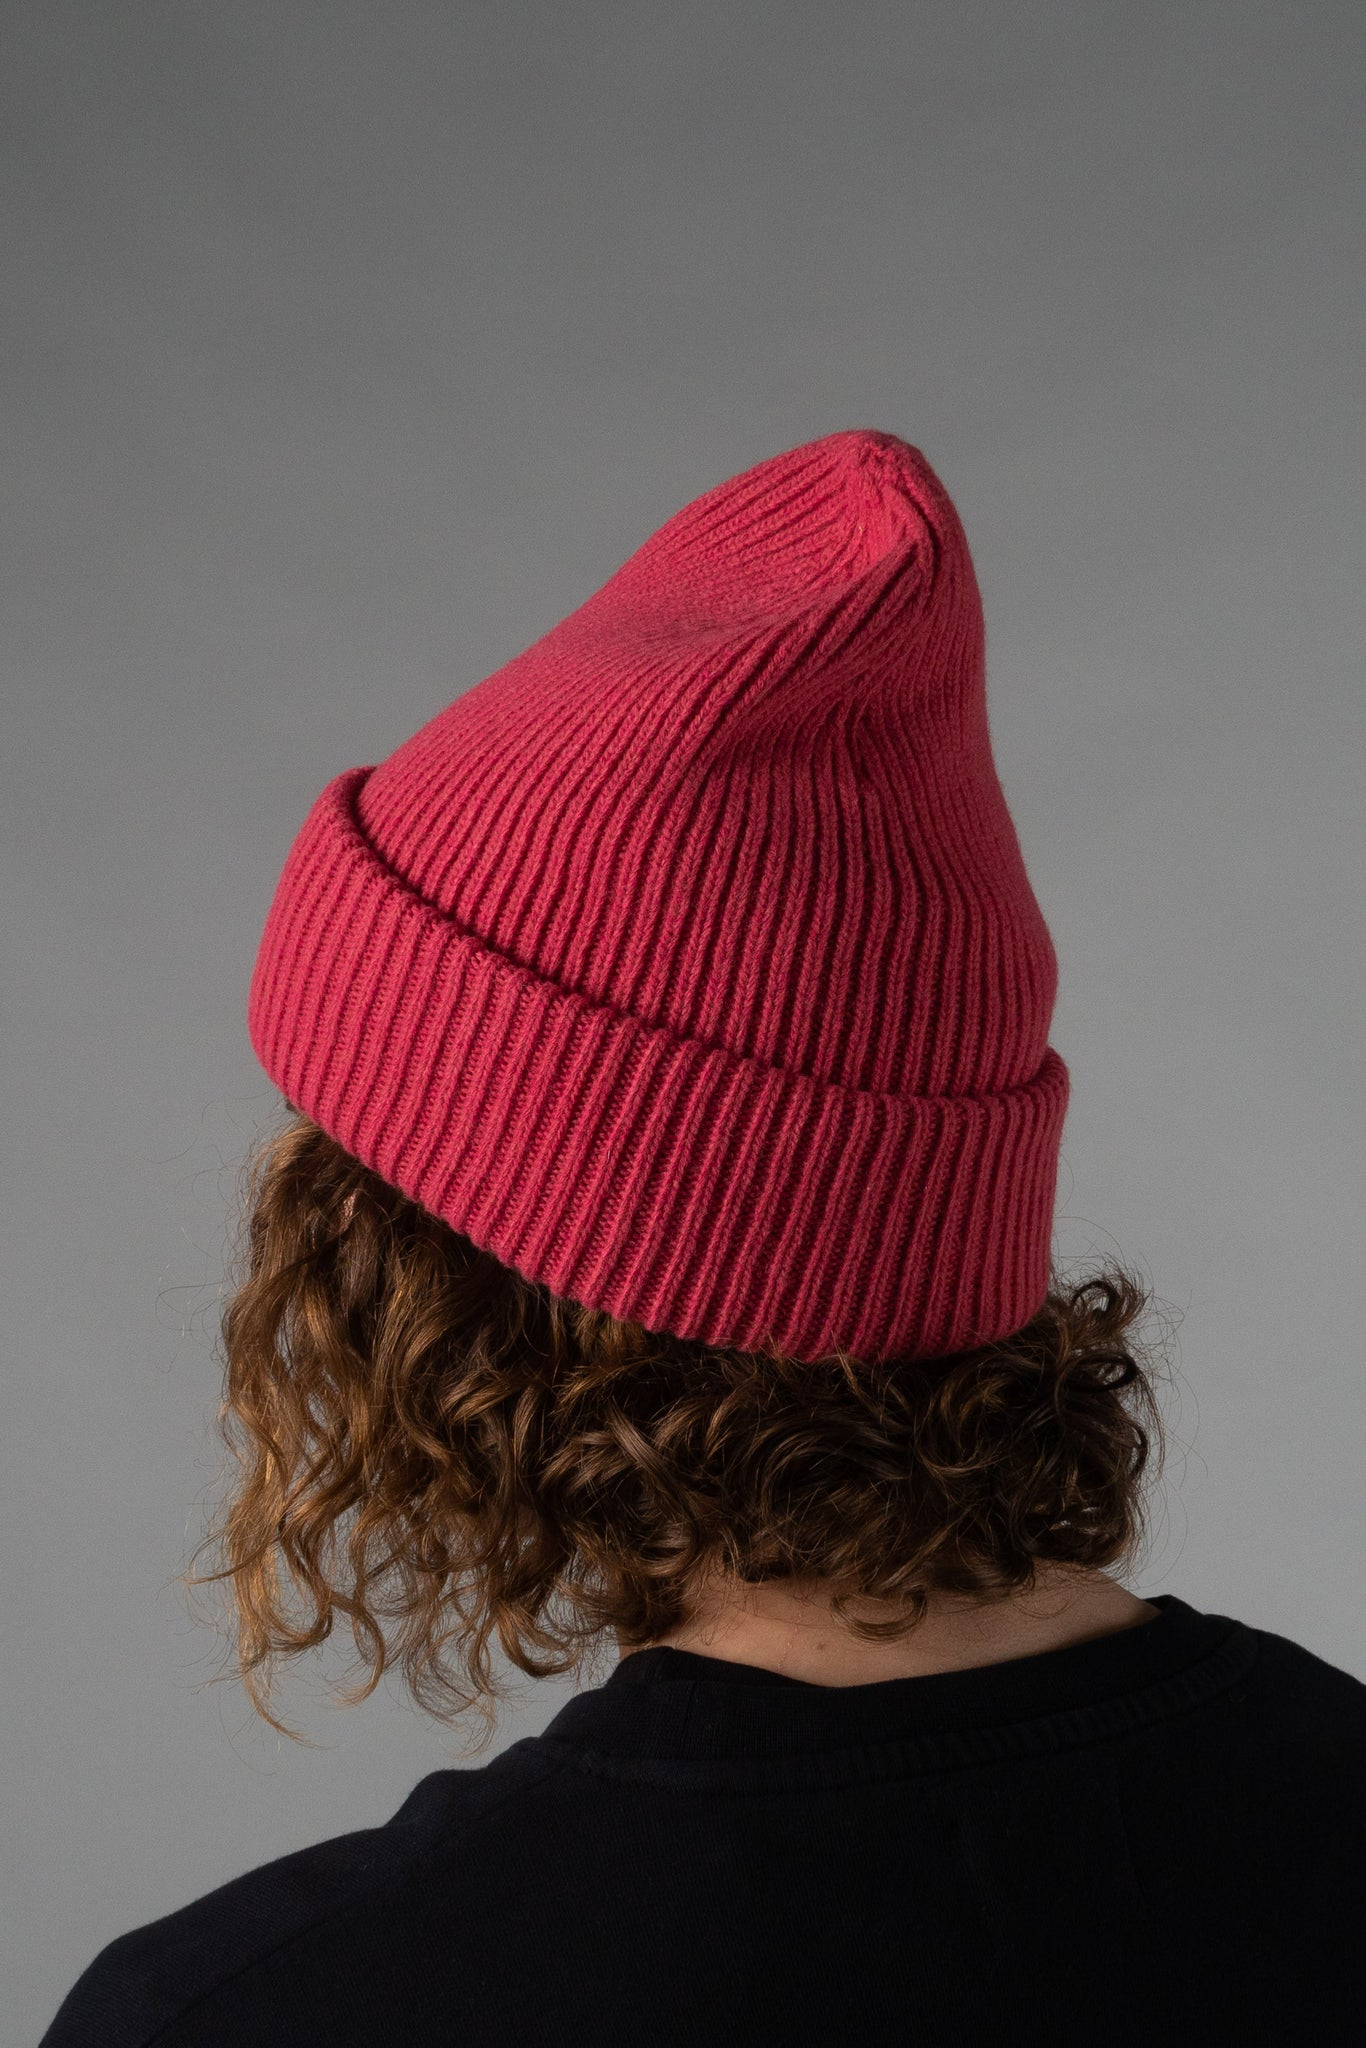 Colorful Standard merino wool hat - rasberry pink